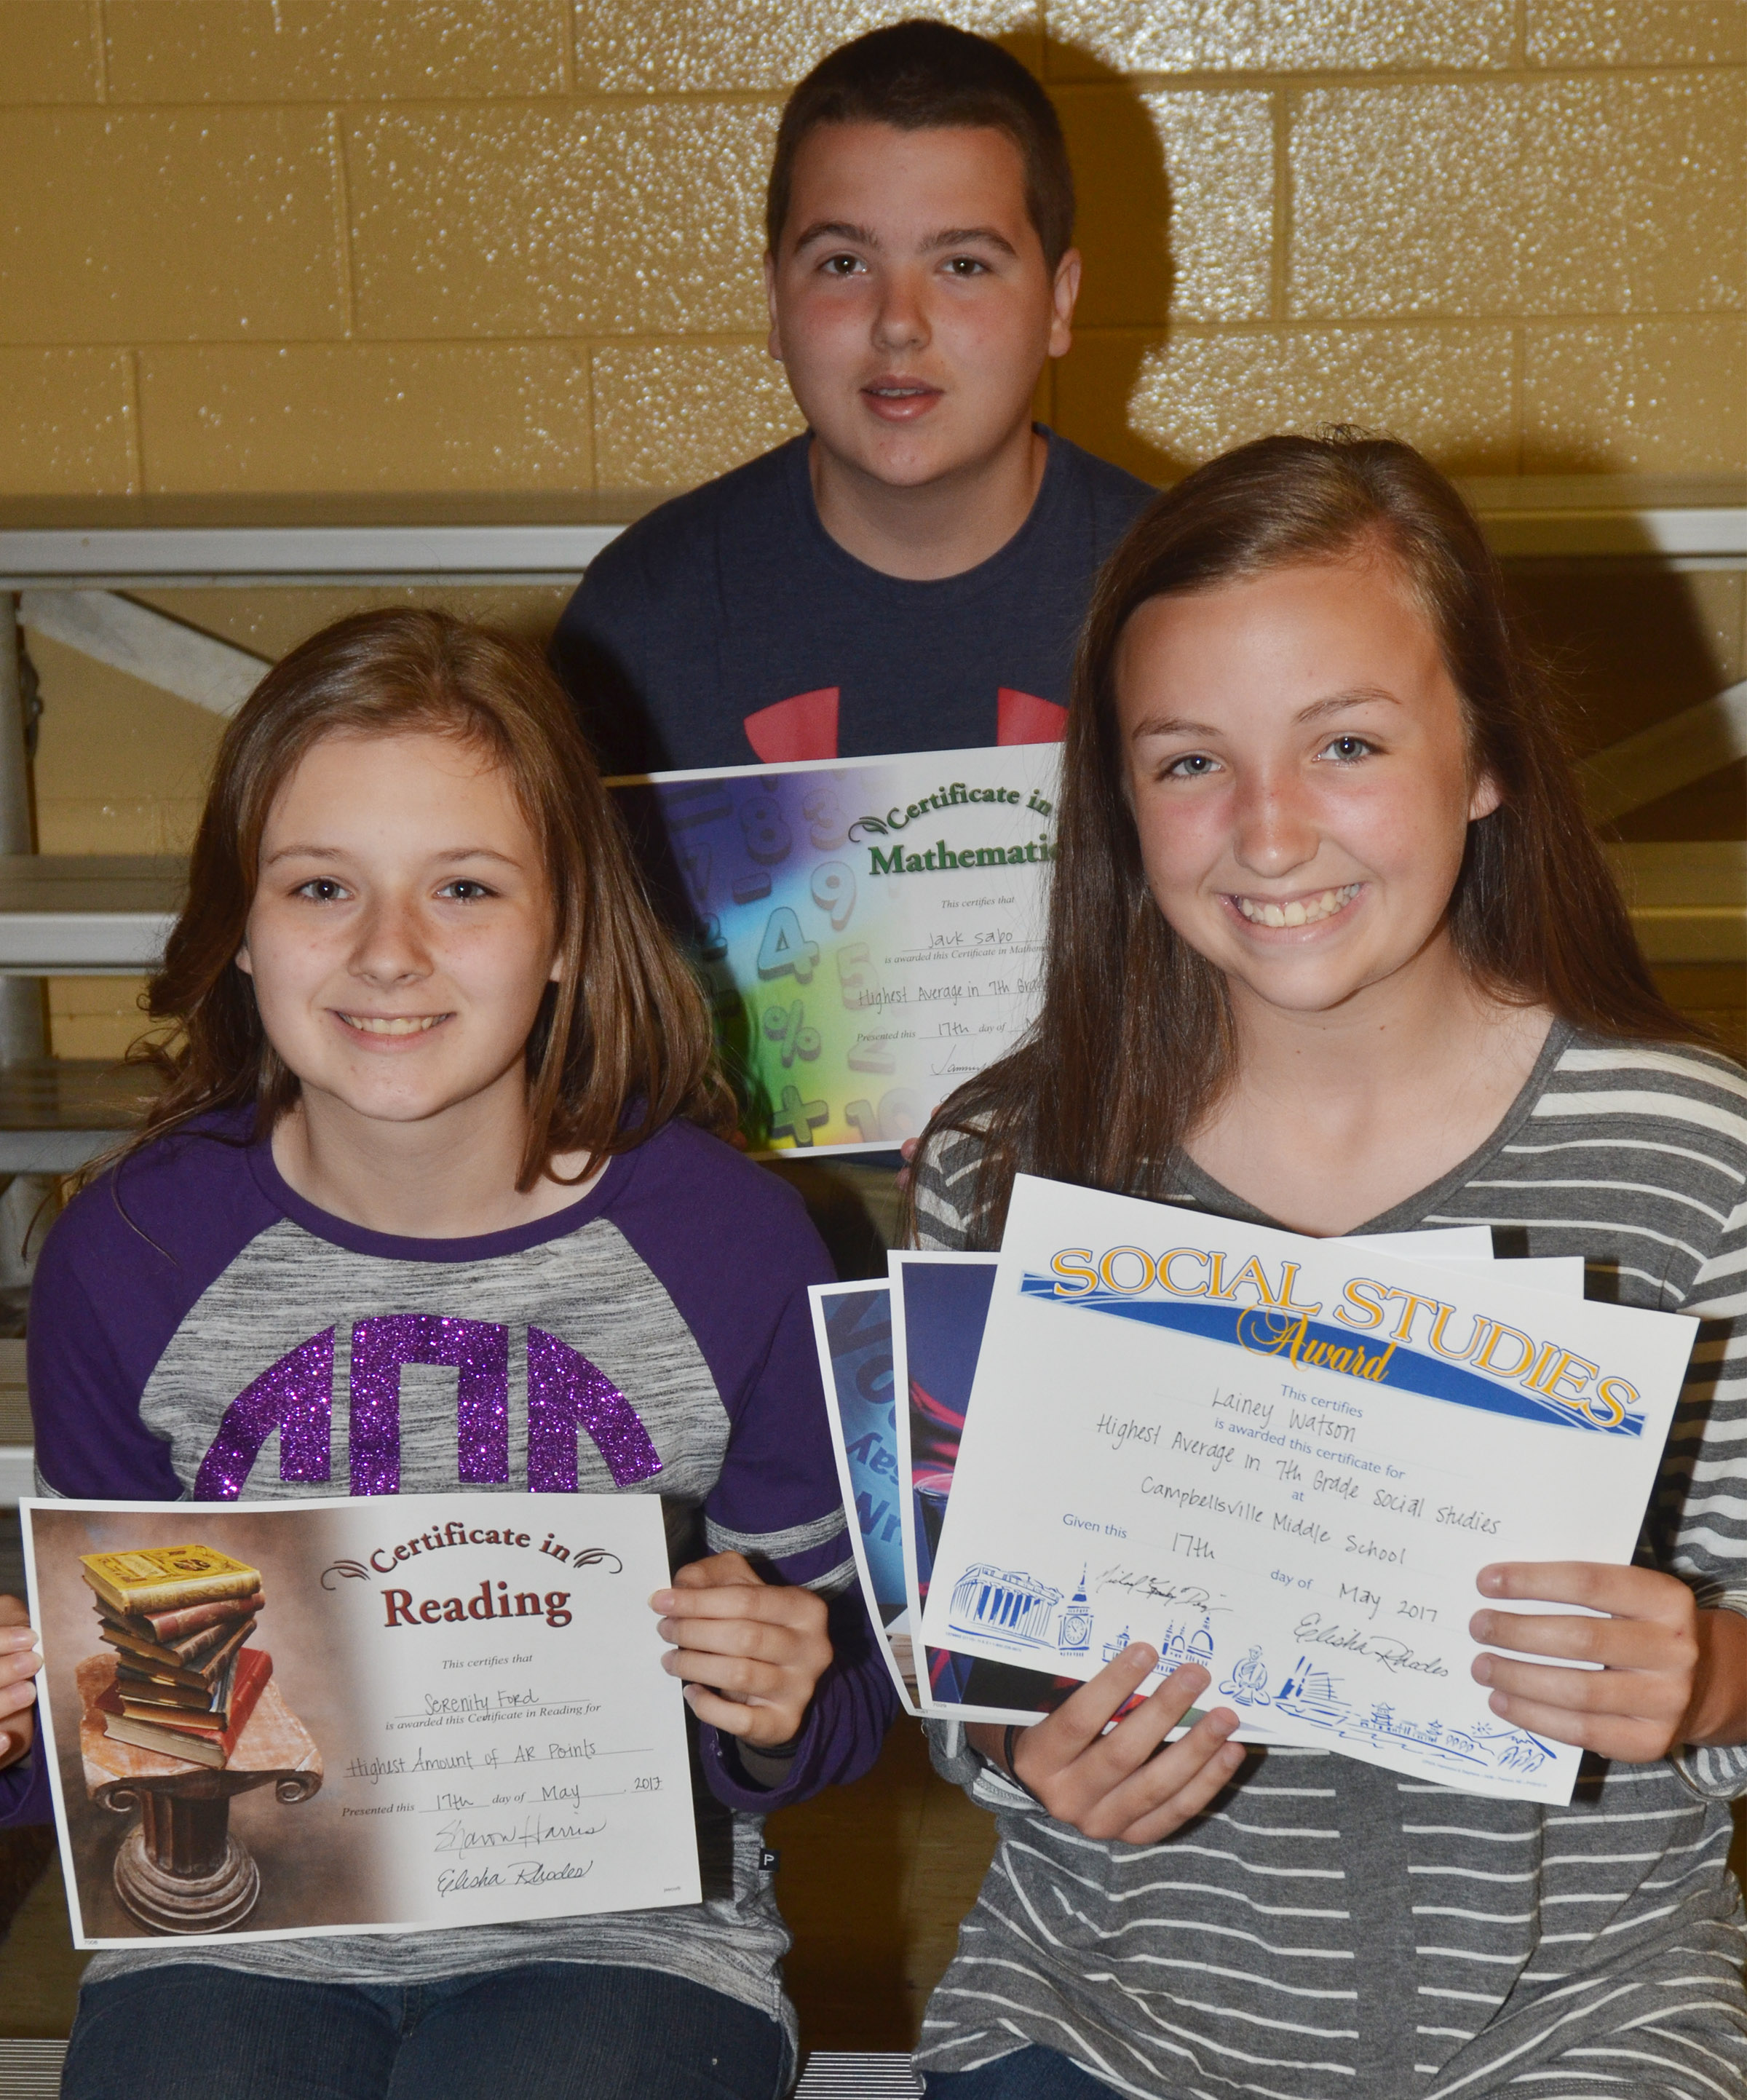 Seventh-grade subject award winners are, from left, front, Serenity Ford, accelerated reader; and Lainey Watson, social studies, science and language arts. Back, Jack Sabo, math.